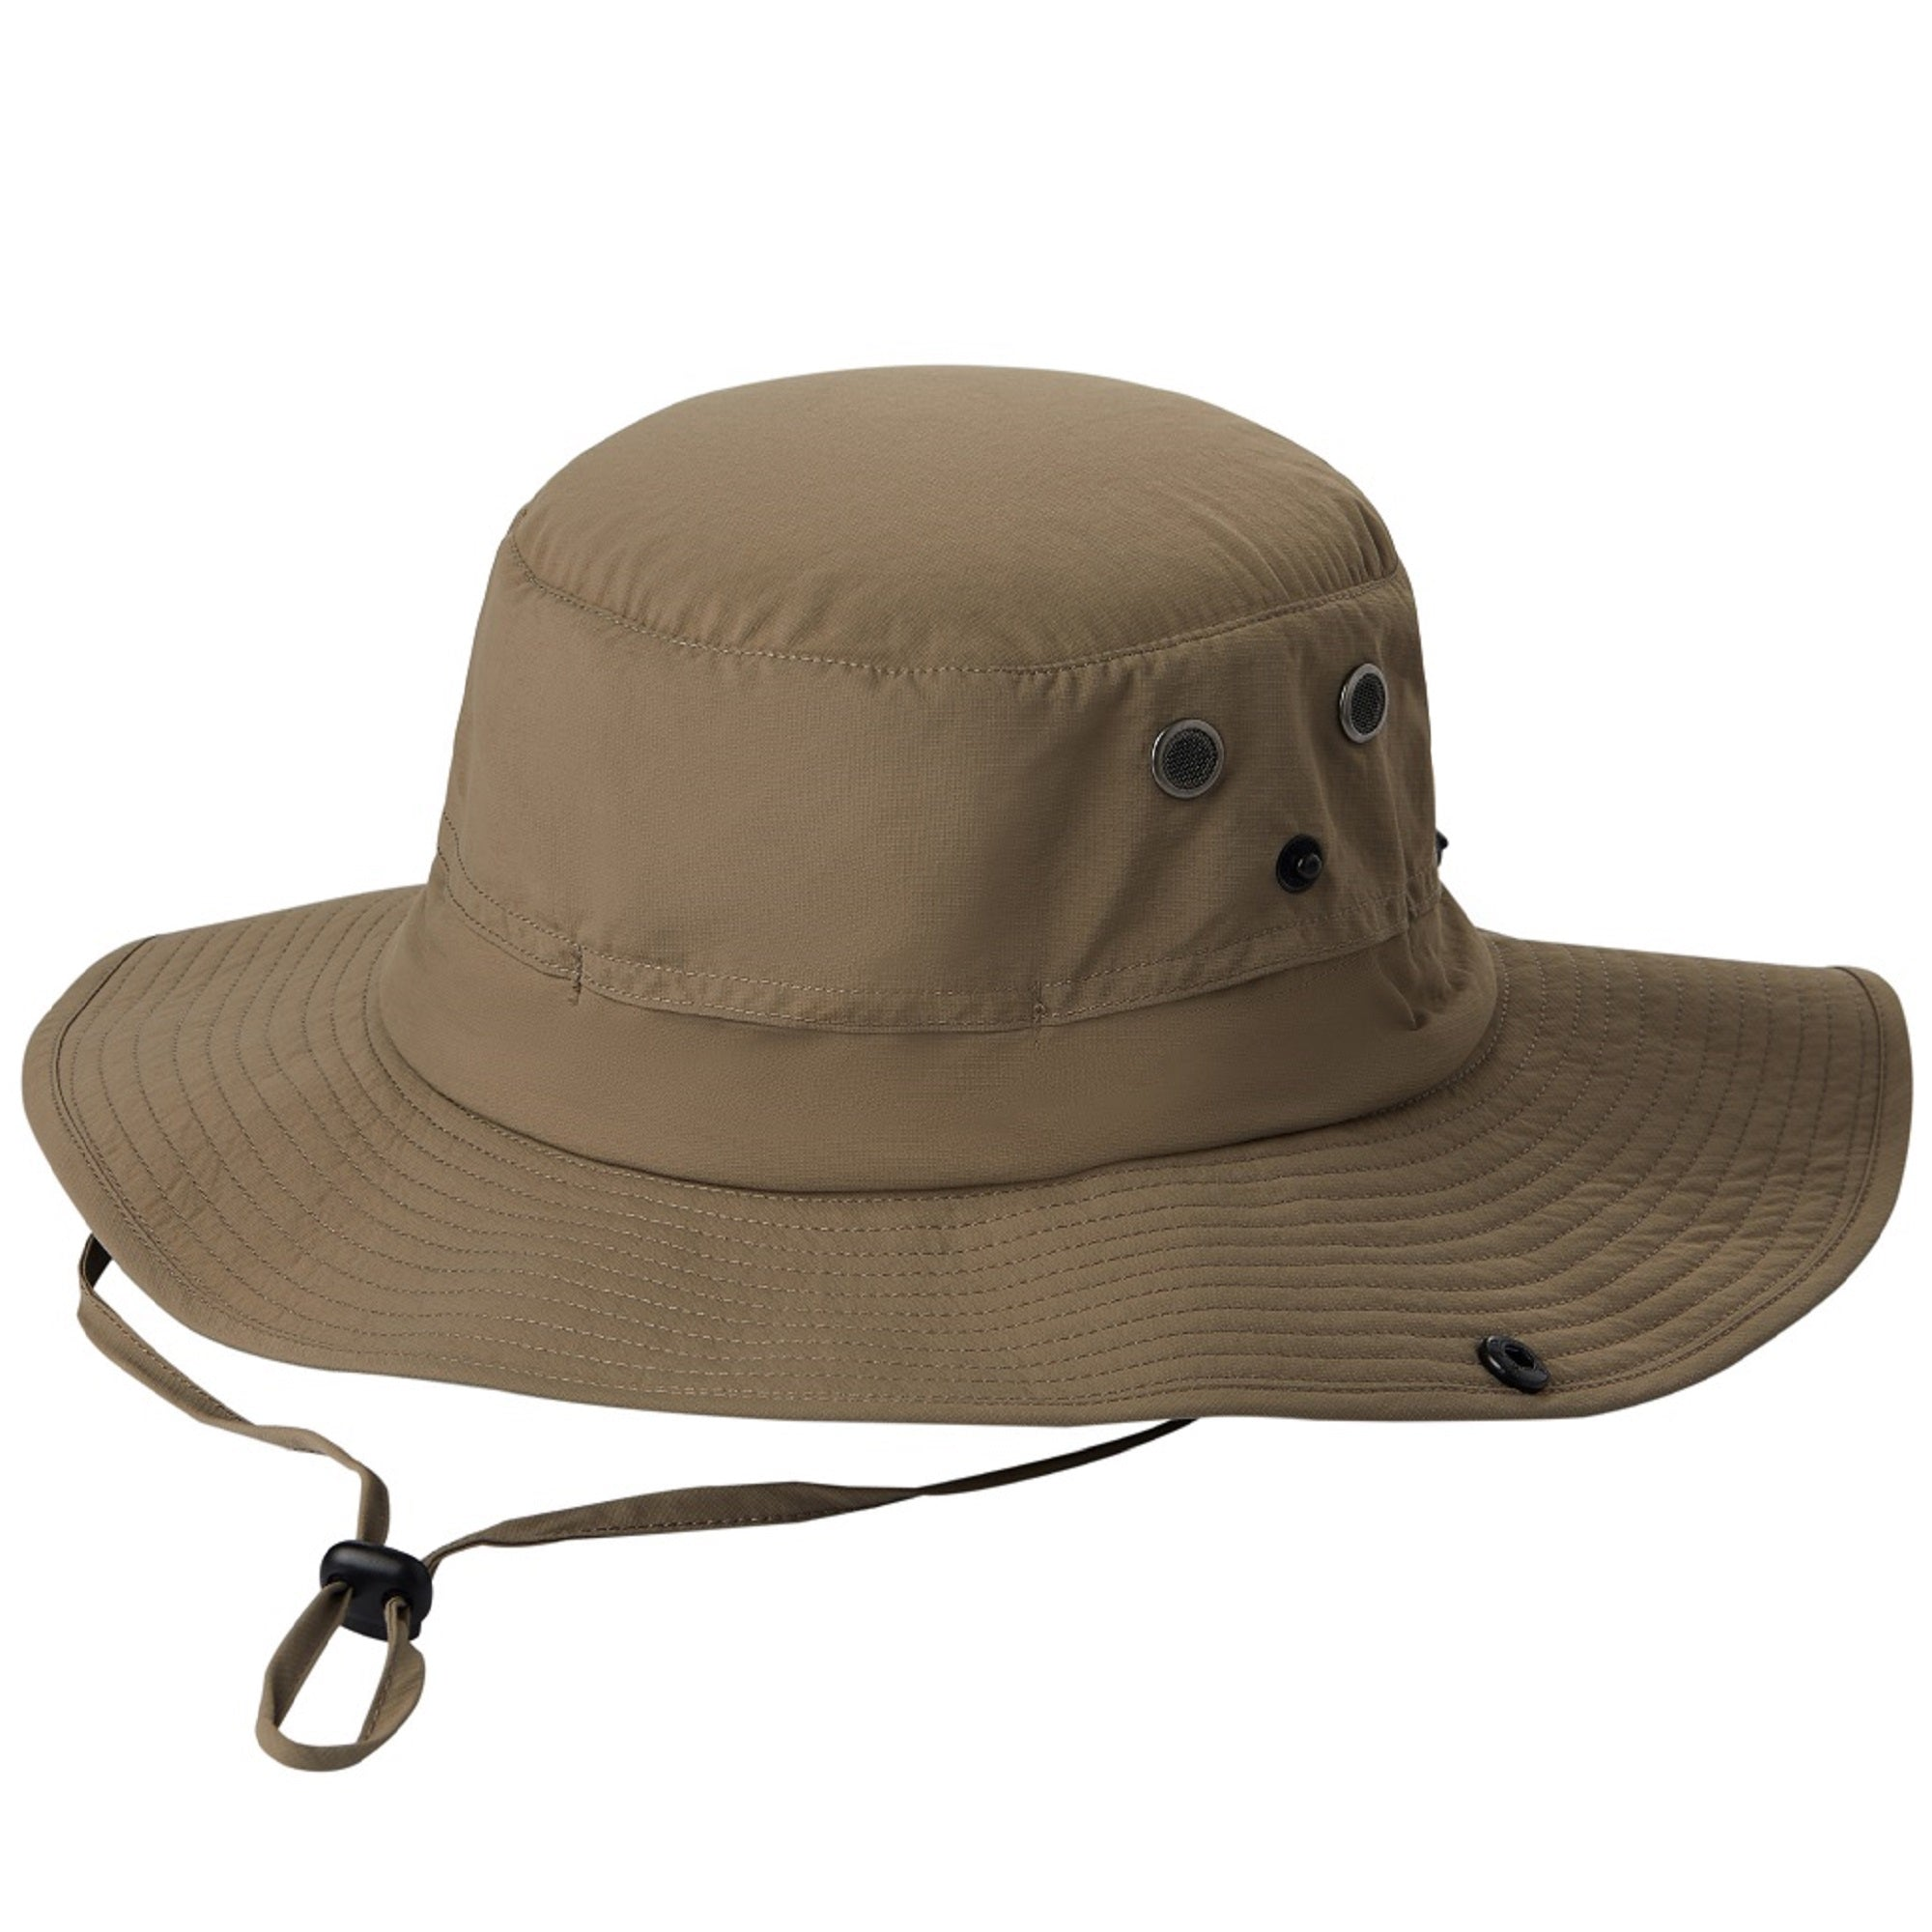 Denali - Performance Boonie Sun Hat